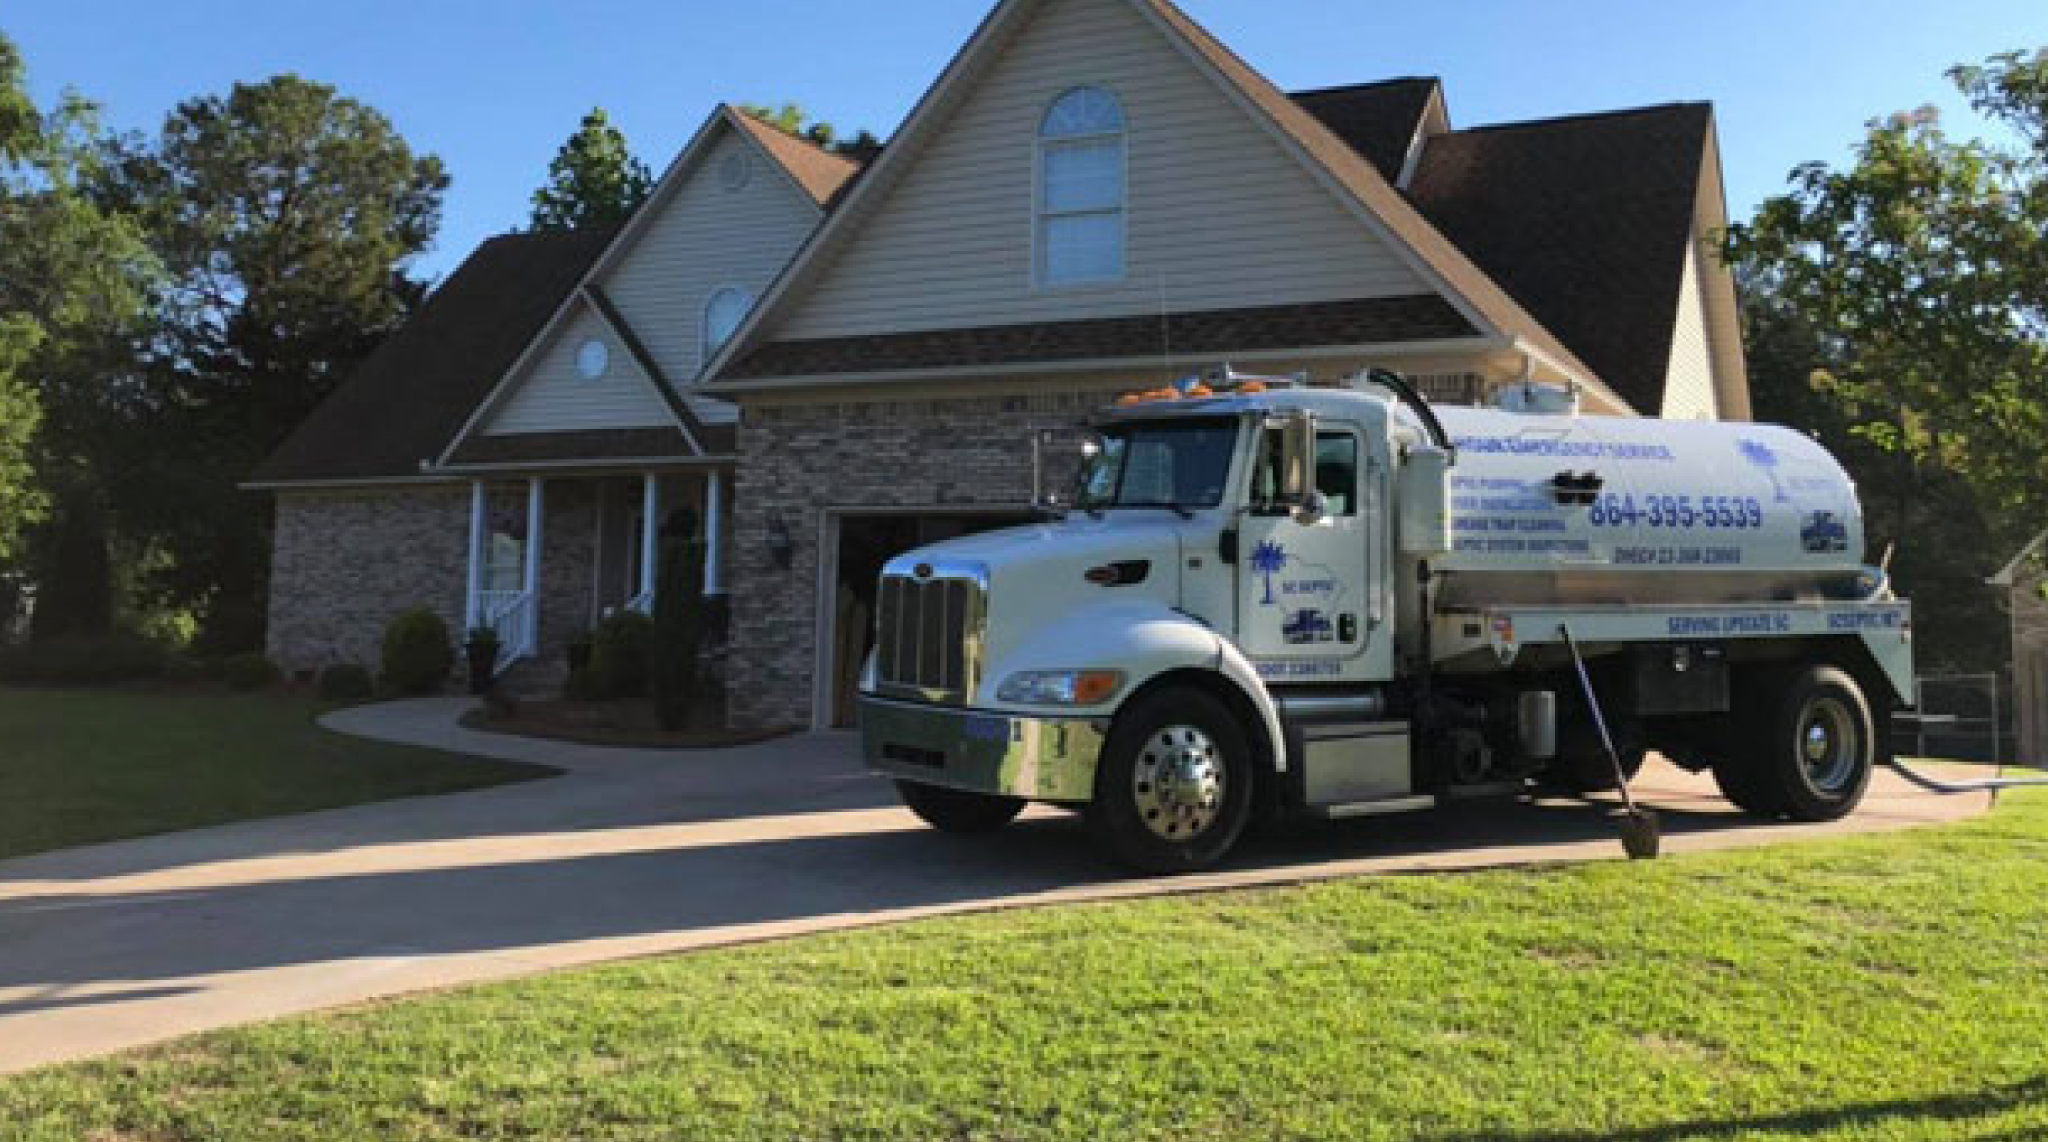 Septic tank cleaning services near me